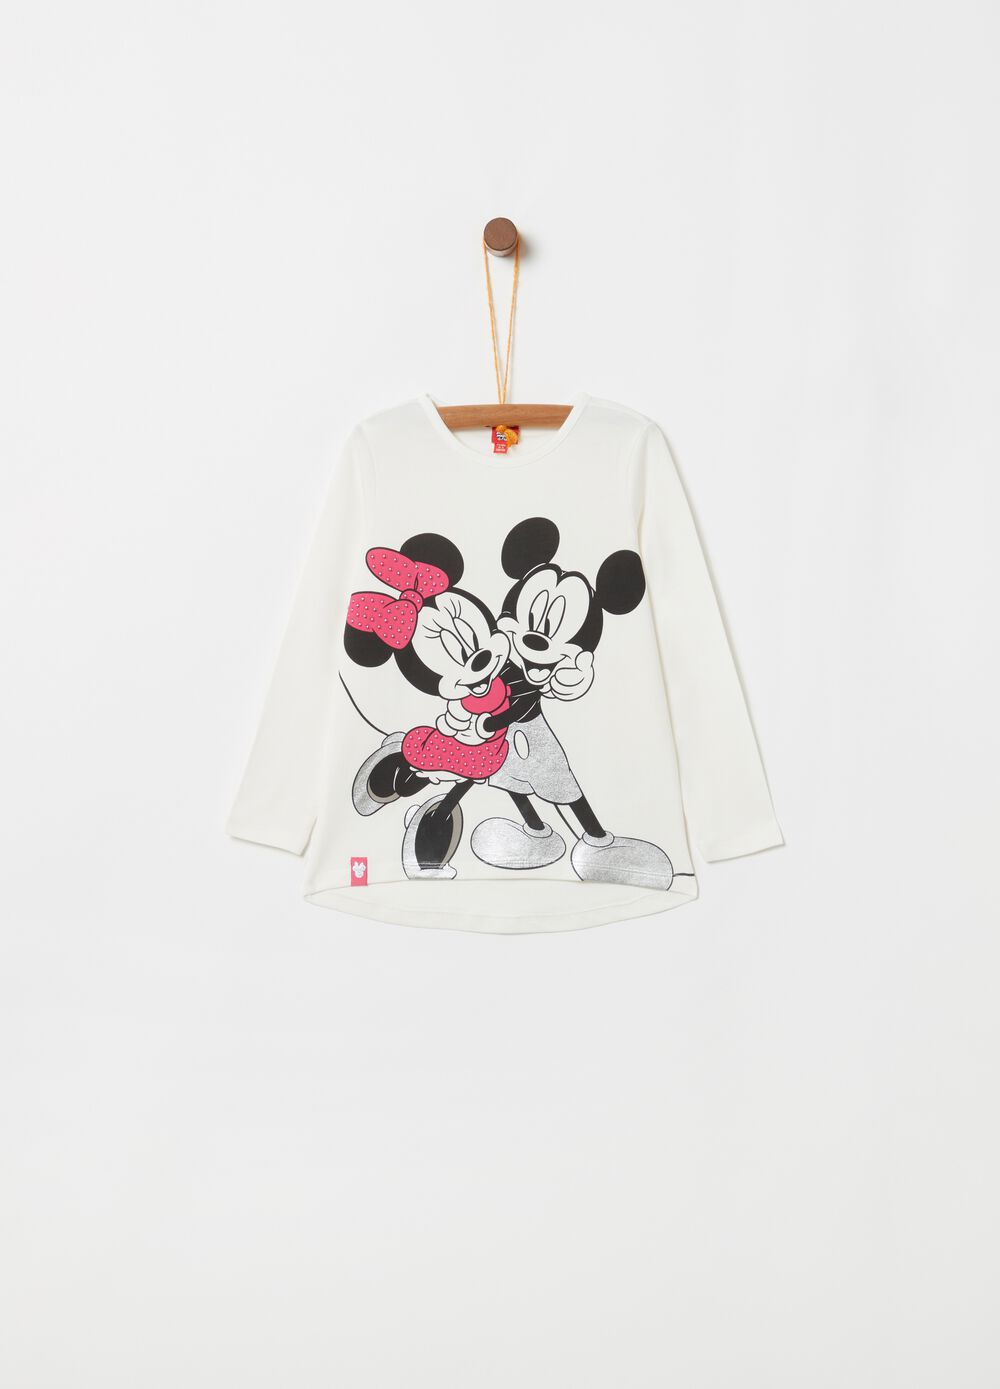 Camiseta estampado Disney Minnie y Mickey